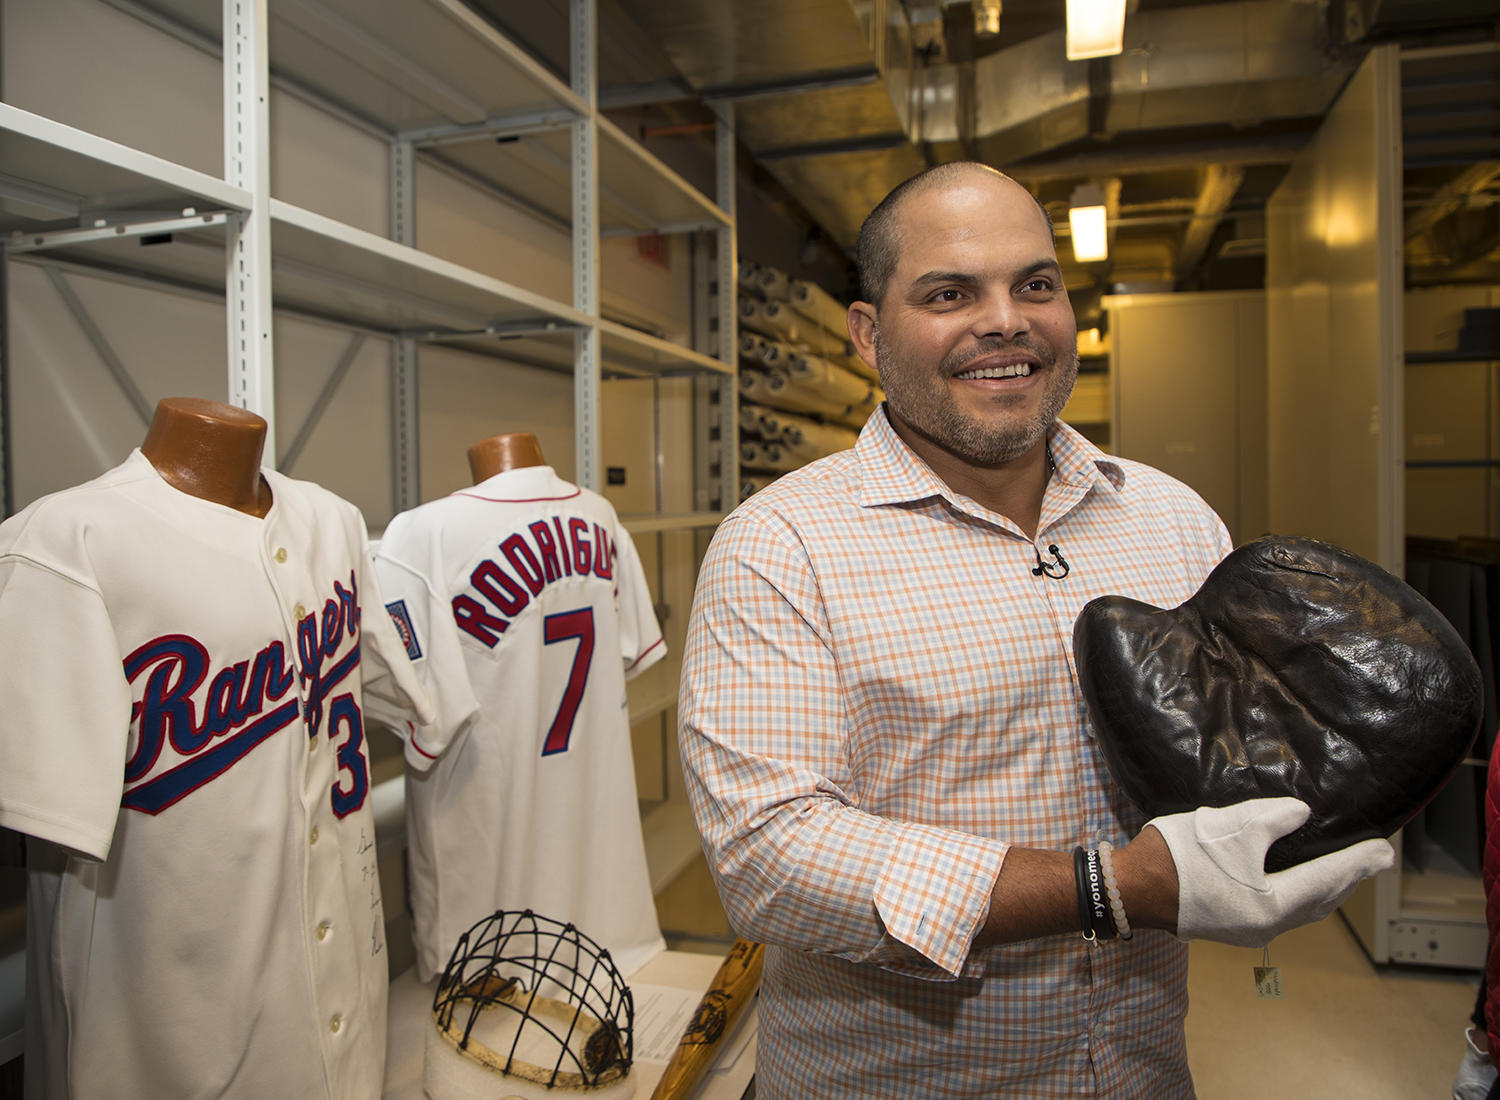 Iván Rodríguez poses with Joe Gunson's original catchers' mitt during his Orientation Tour of the Hall of Fame.  Gunson, was one of the earliest adopters of the catcher's mitt.  (Milo Stewart Jr. / National Baseball Hall of Fame)